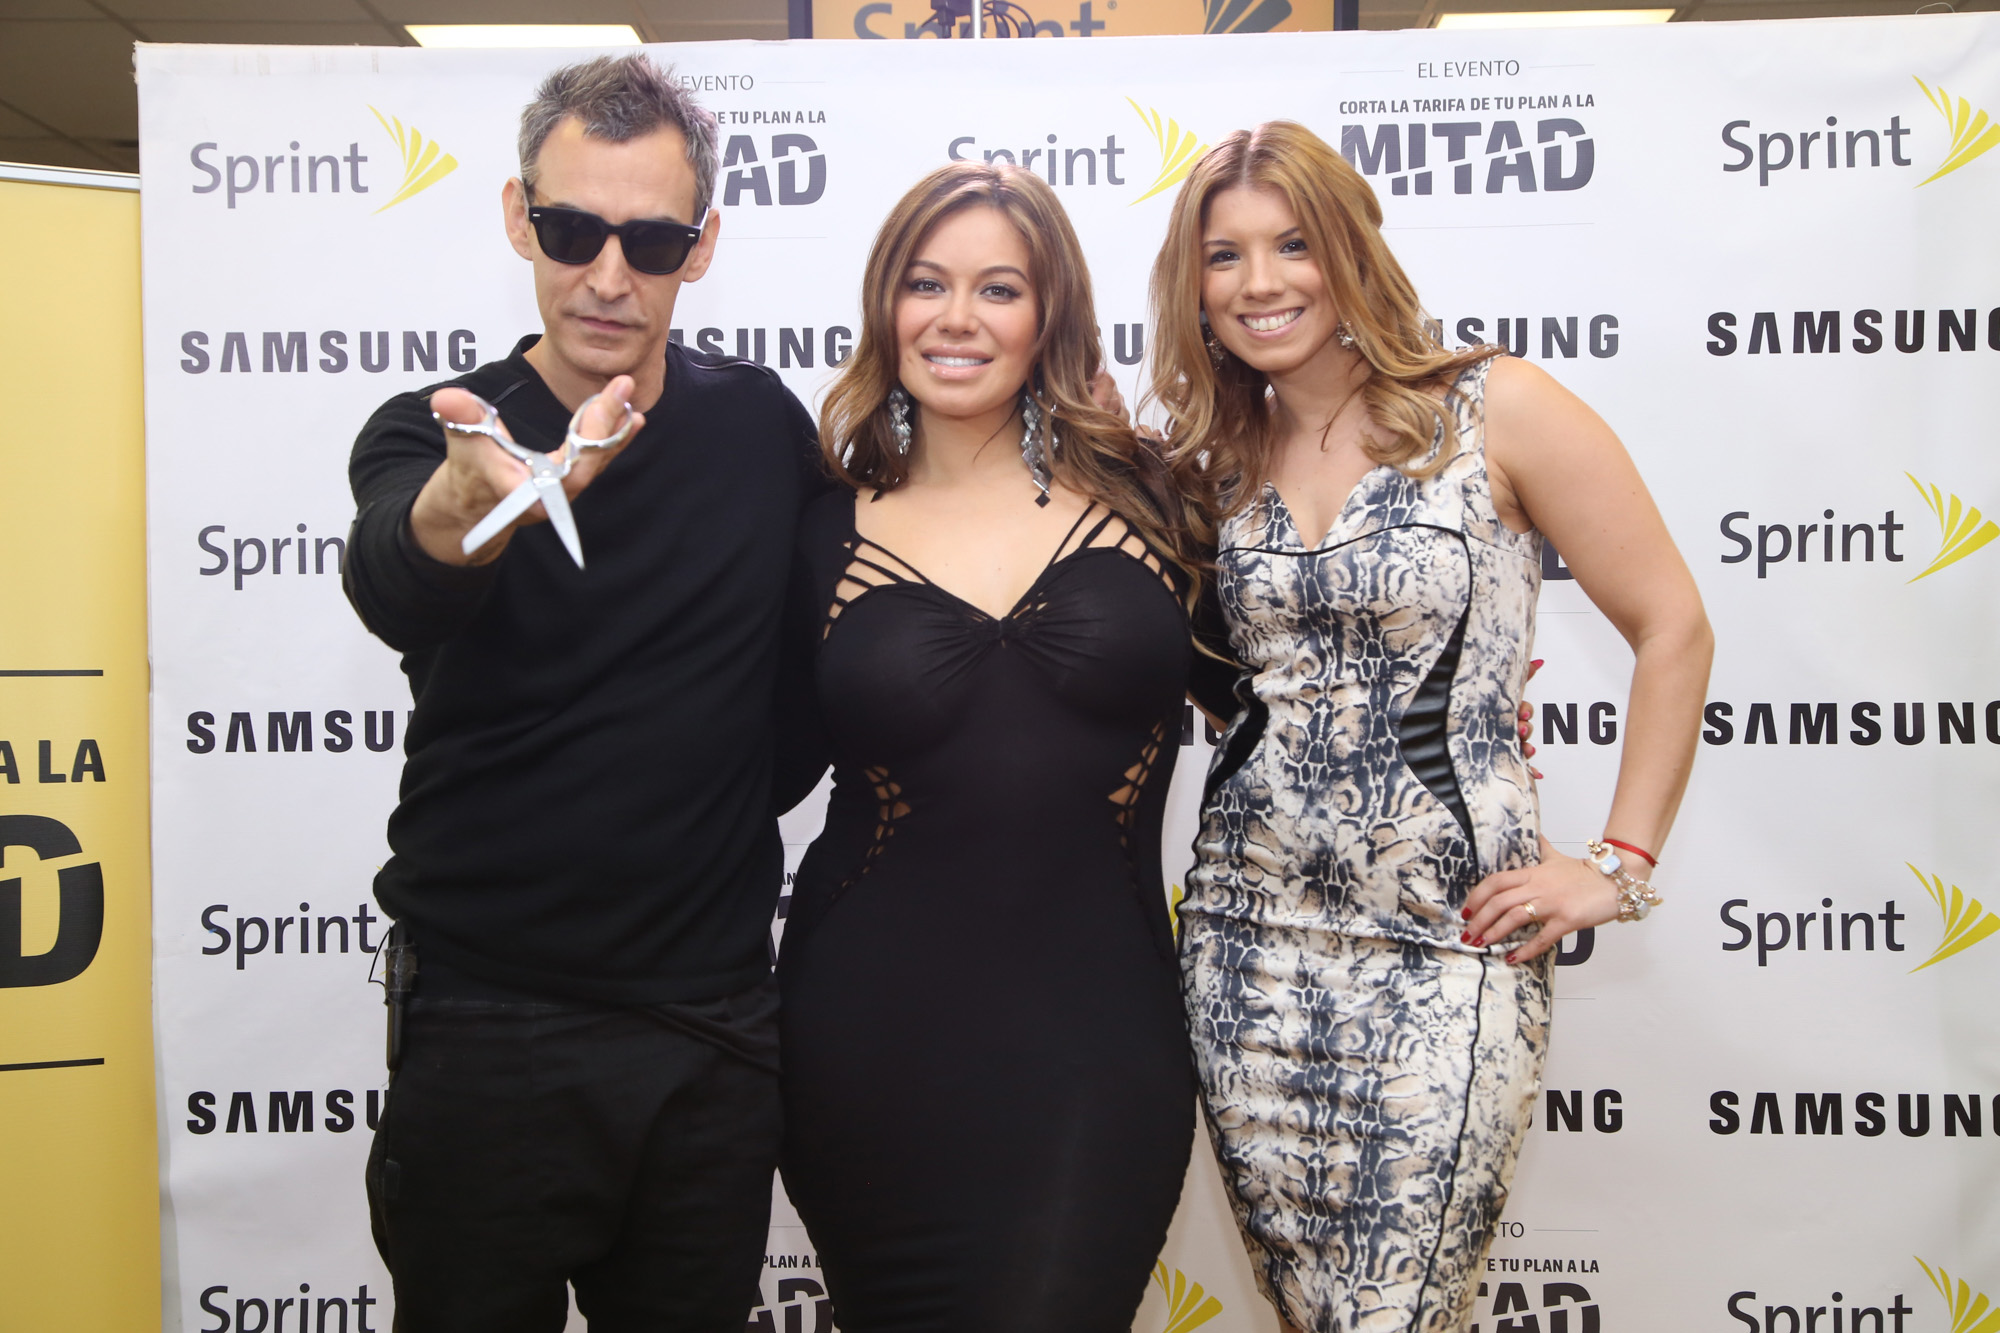 Designer Adam Saaks, Chiquis Rivera and Super Latina, Gabriela Natale pose during the culmination of the Sprint Cut Your Bill in Half Event with the final result, Chiquis cut dress.